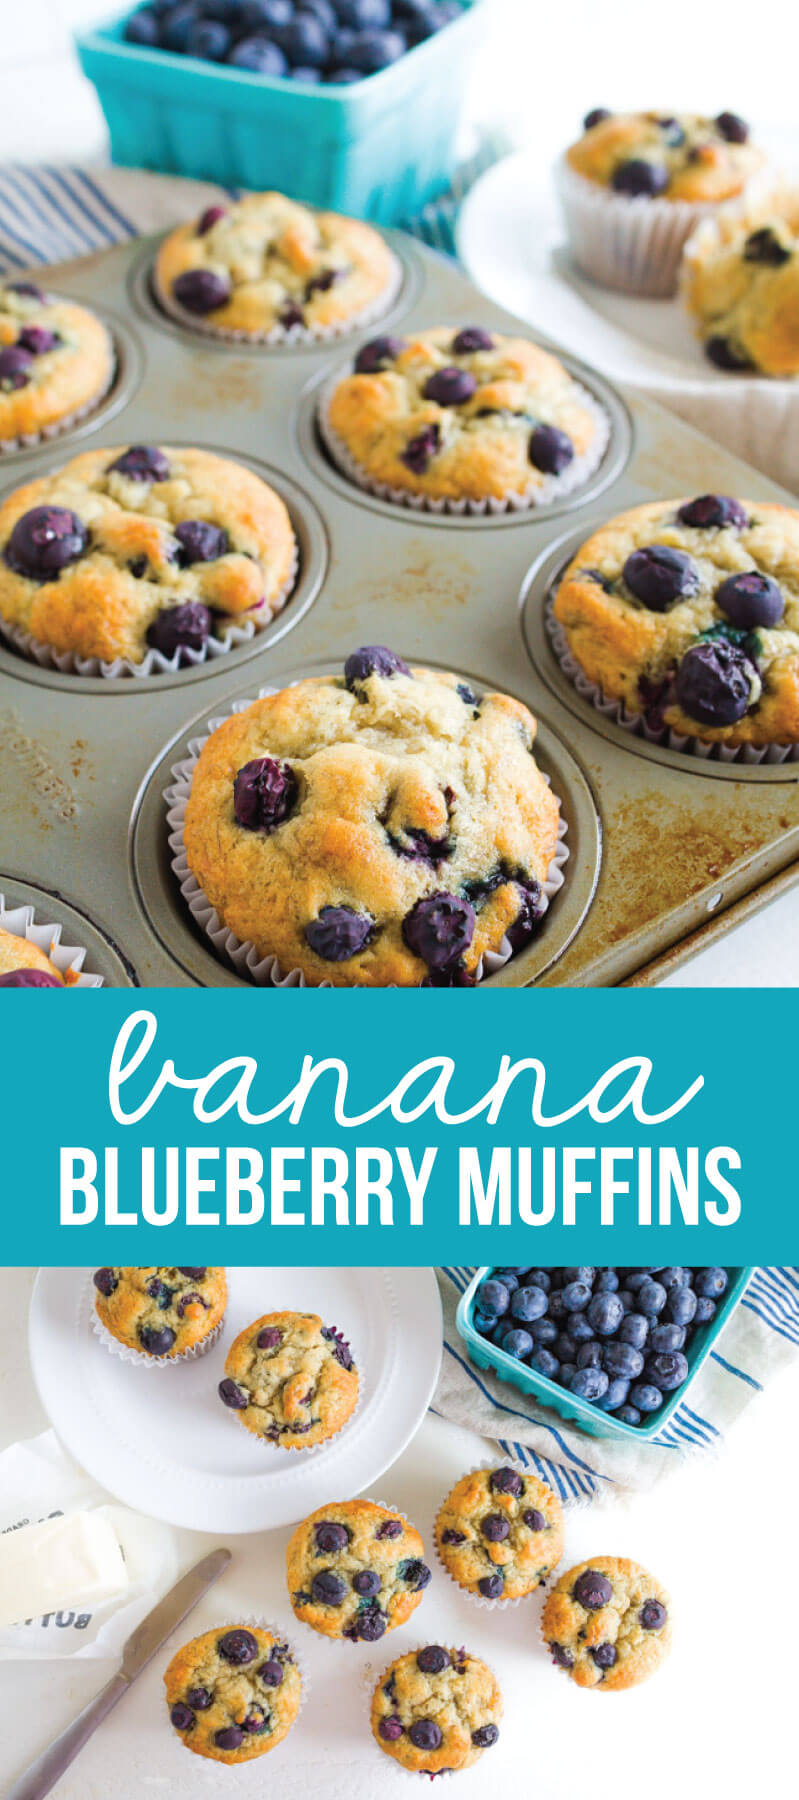 Simple to make and family friendly, these Banana Blueberry Muffins are super tasty. You'll want to make this blueberry muffin recipe over again and again via www.thirtyhandmadedays.com